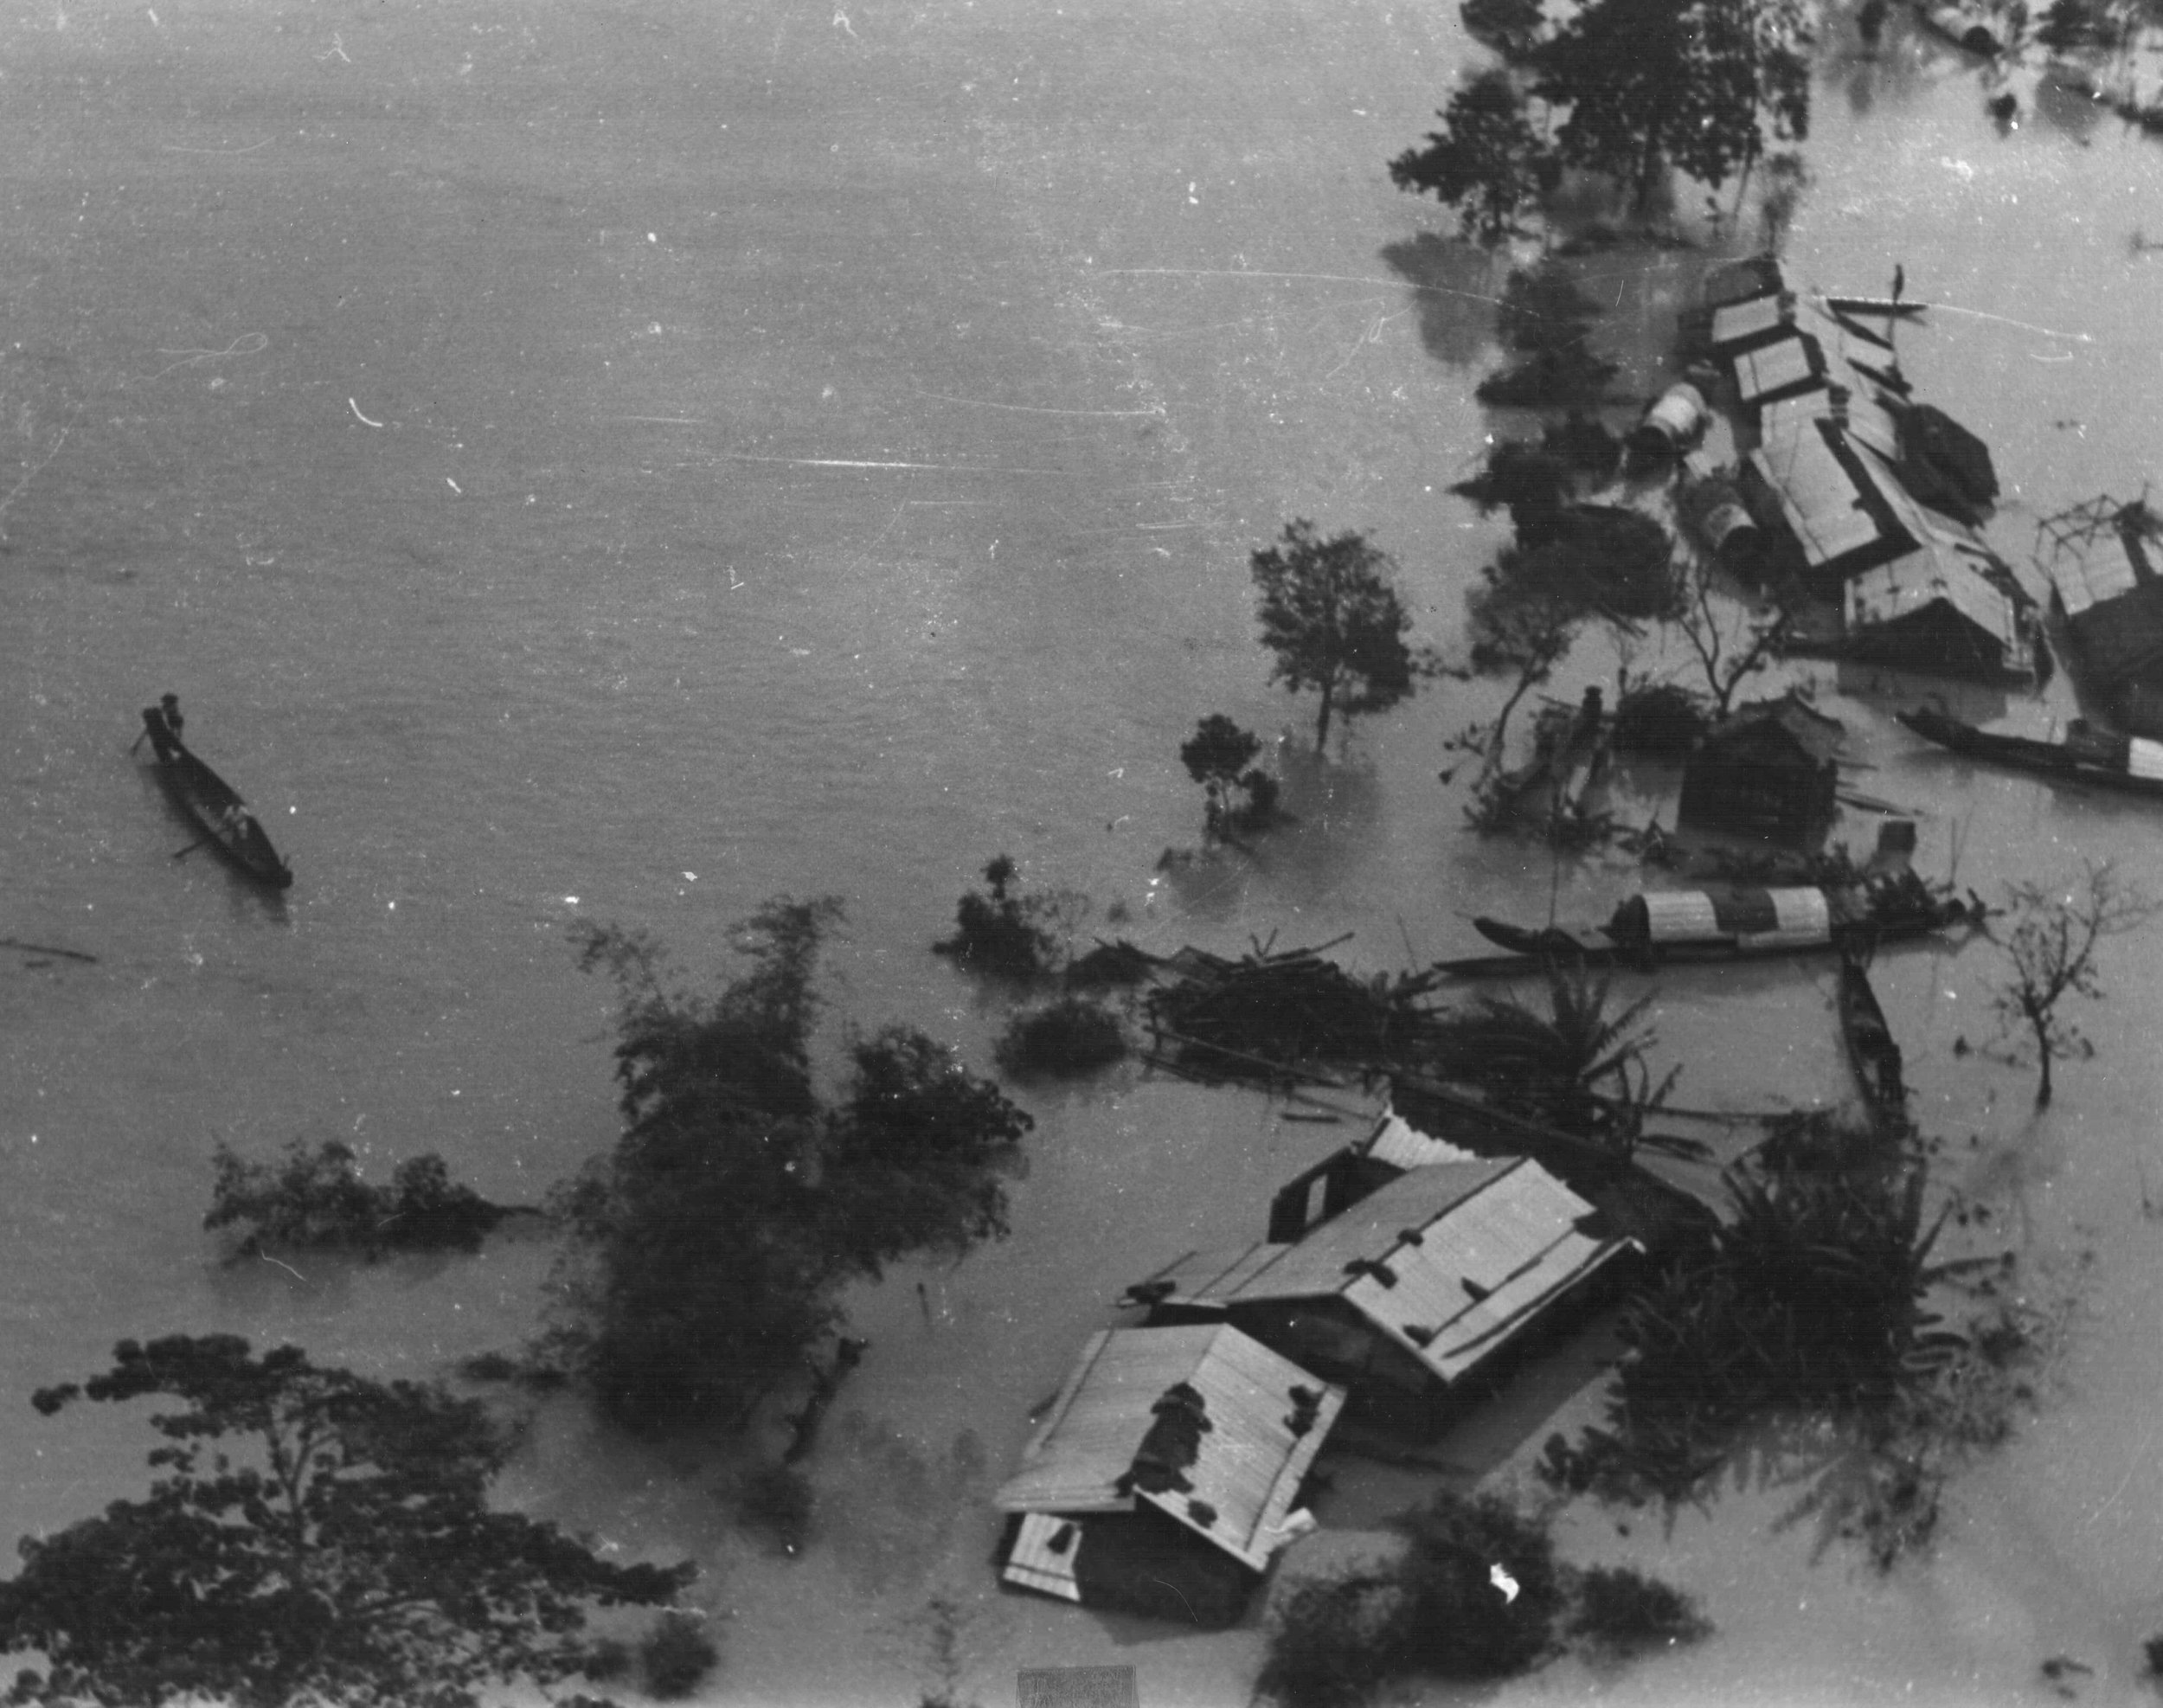 When a typhoon hit the northern part of South Vietnam in late 1970 many of the combat operations in western I Corps were suspended while troops from the 101st Airborne Division aided villagers in the lowlands. Photo by the author.